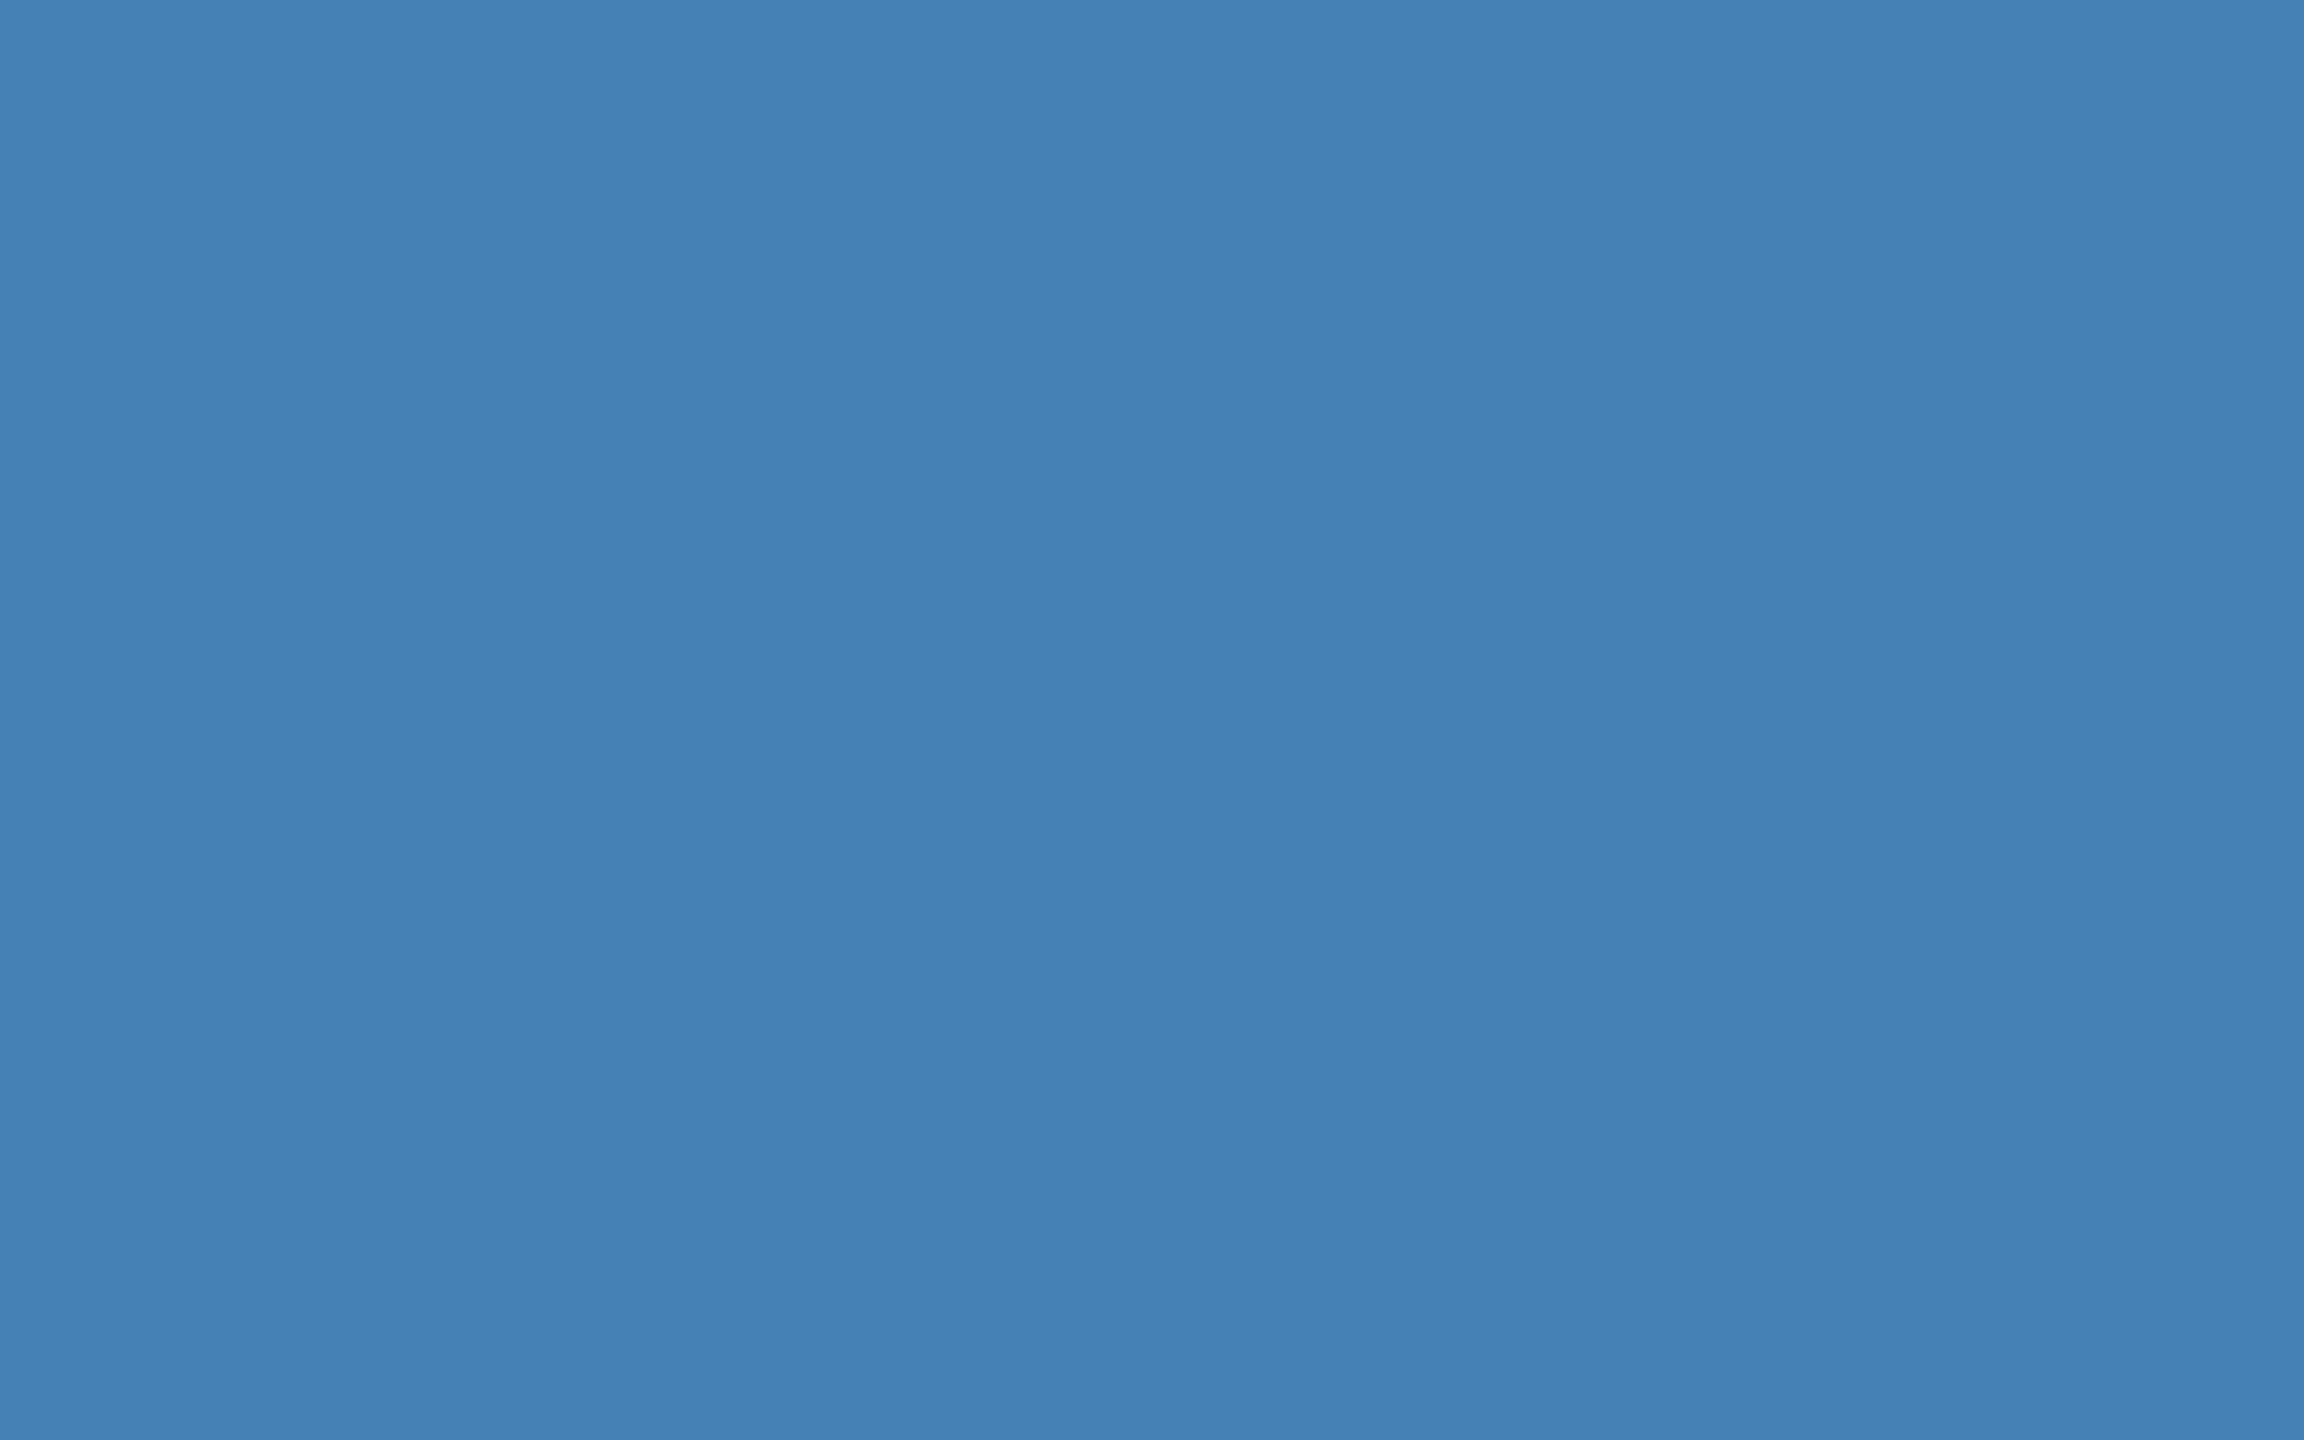 2304x1440 Steel Blue Solid Color Background